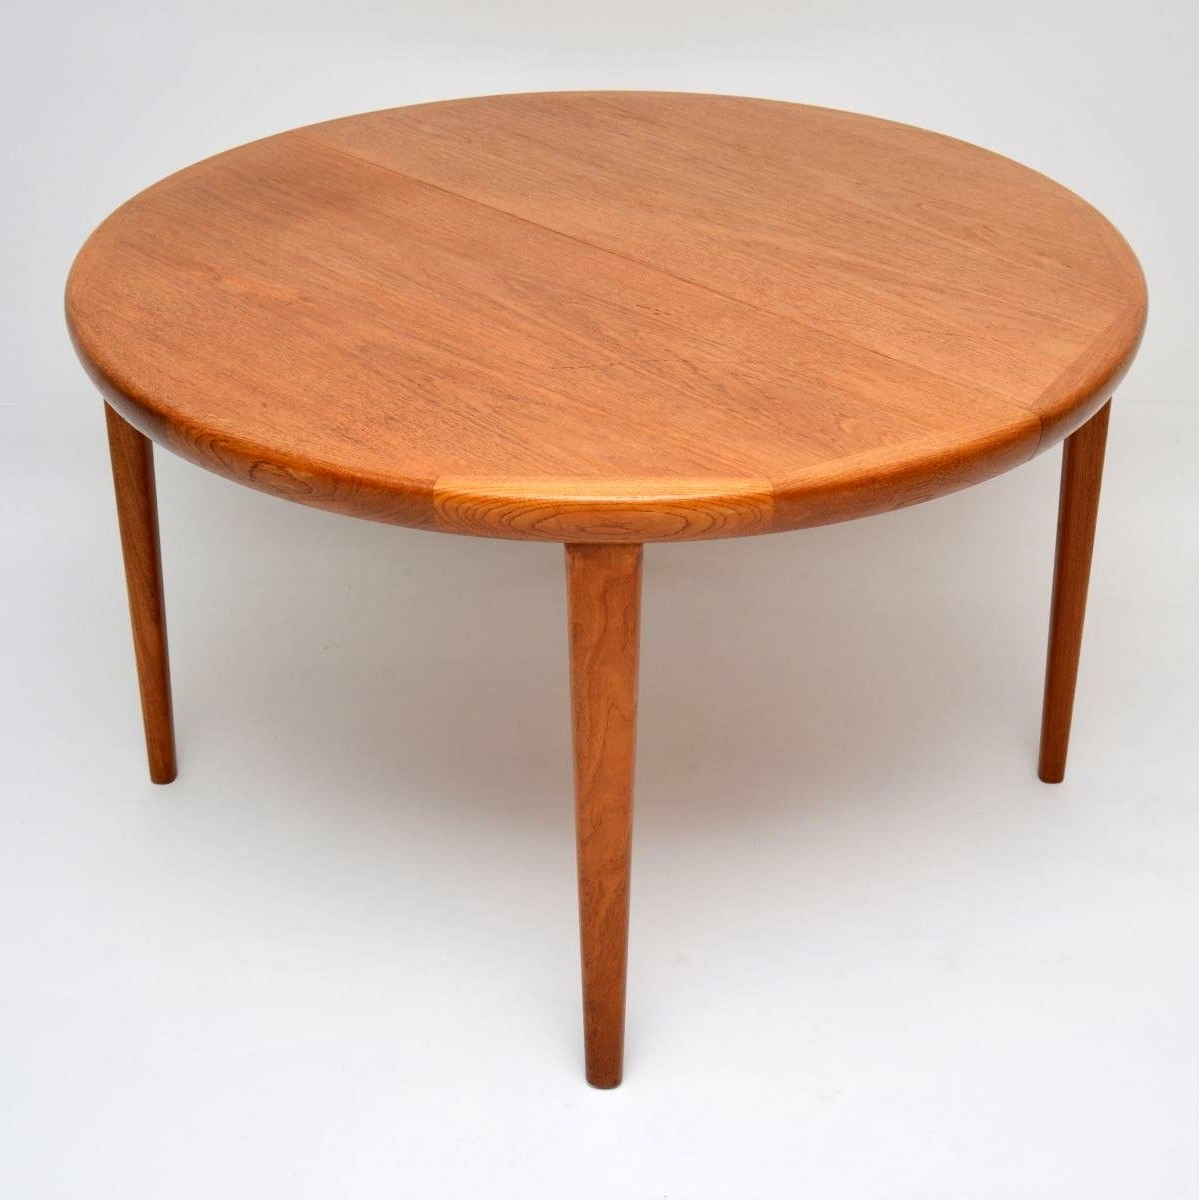 Retro Extending Dining Tables For Well Known Danish Retro Teak Extending Dining Tablevv Mobler Vintage 1960's (View 17 of 25)